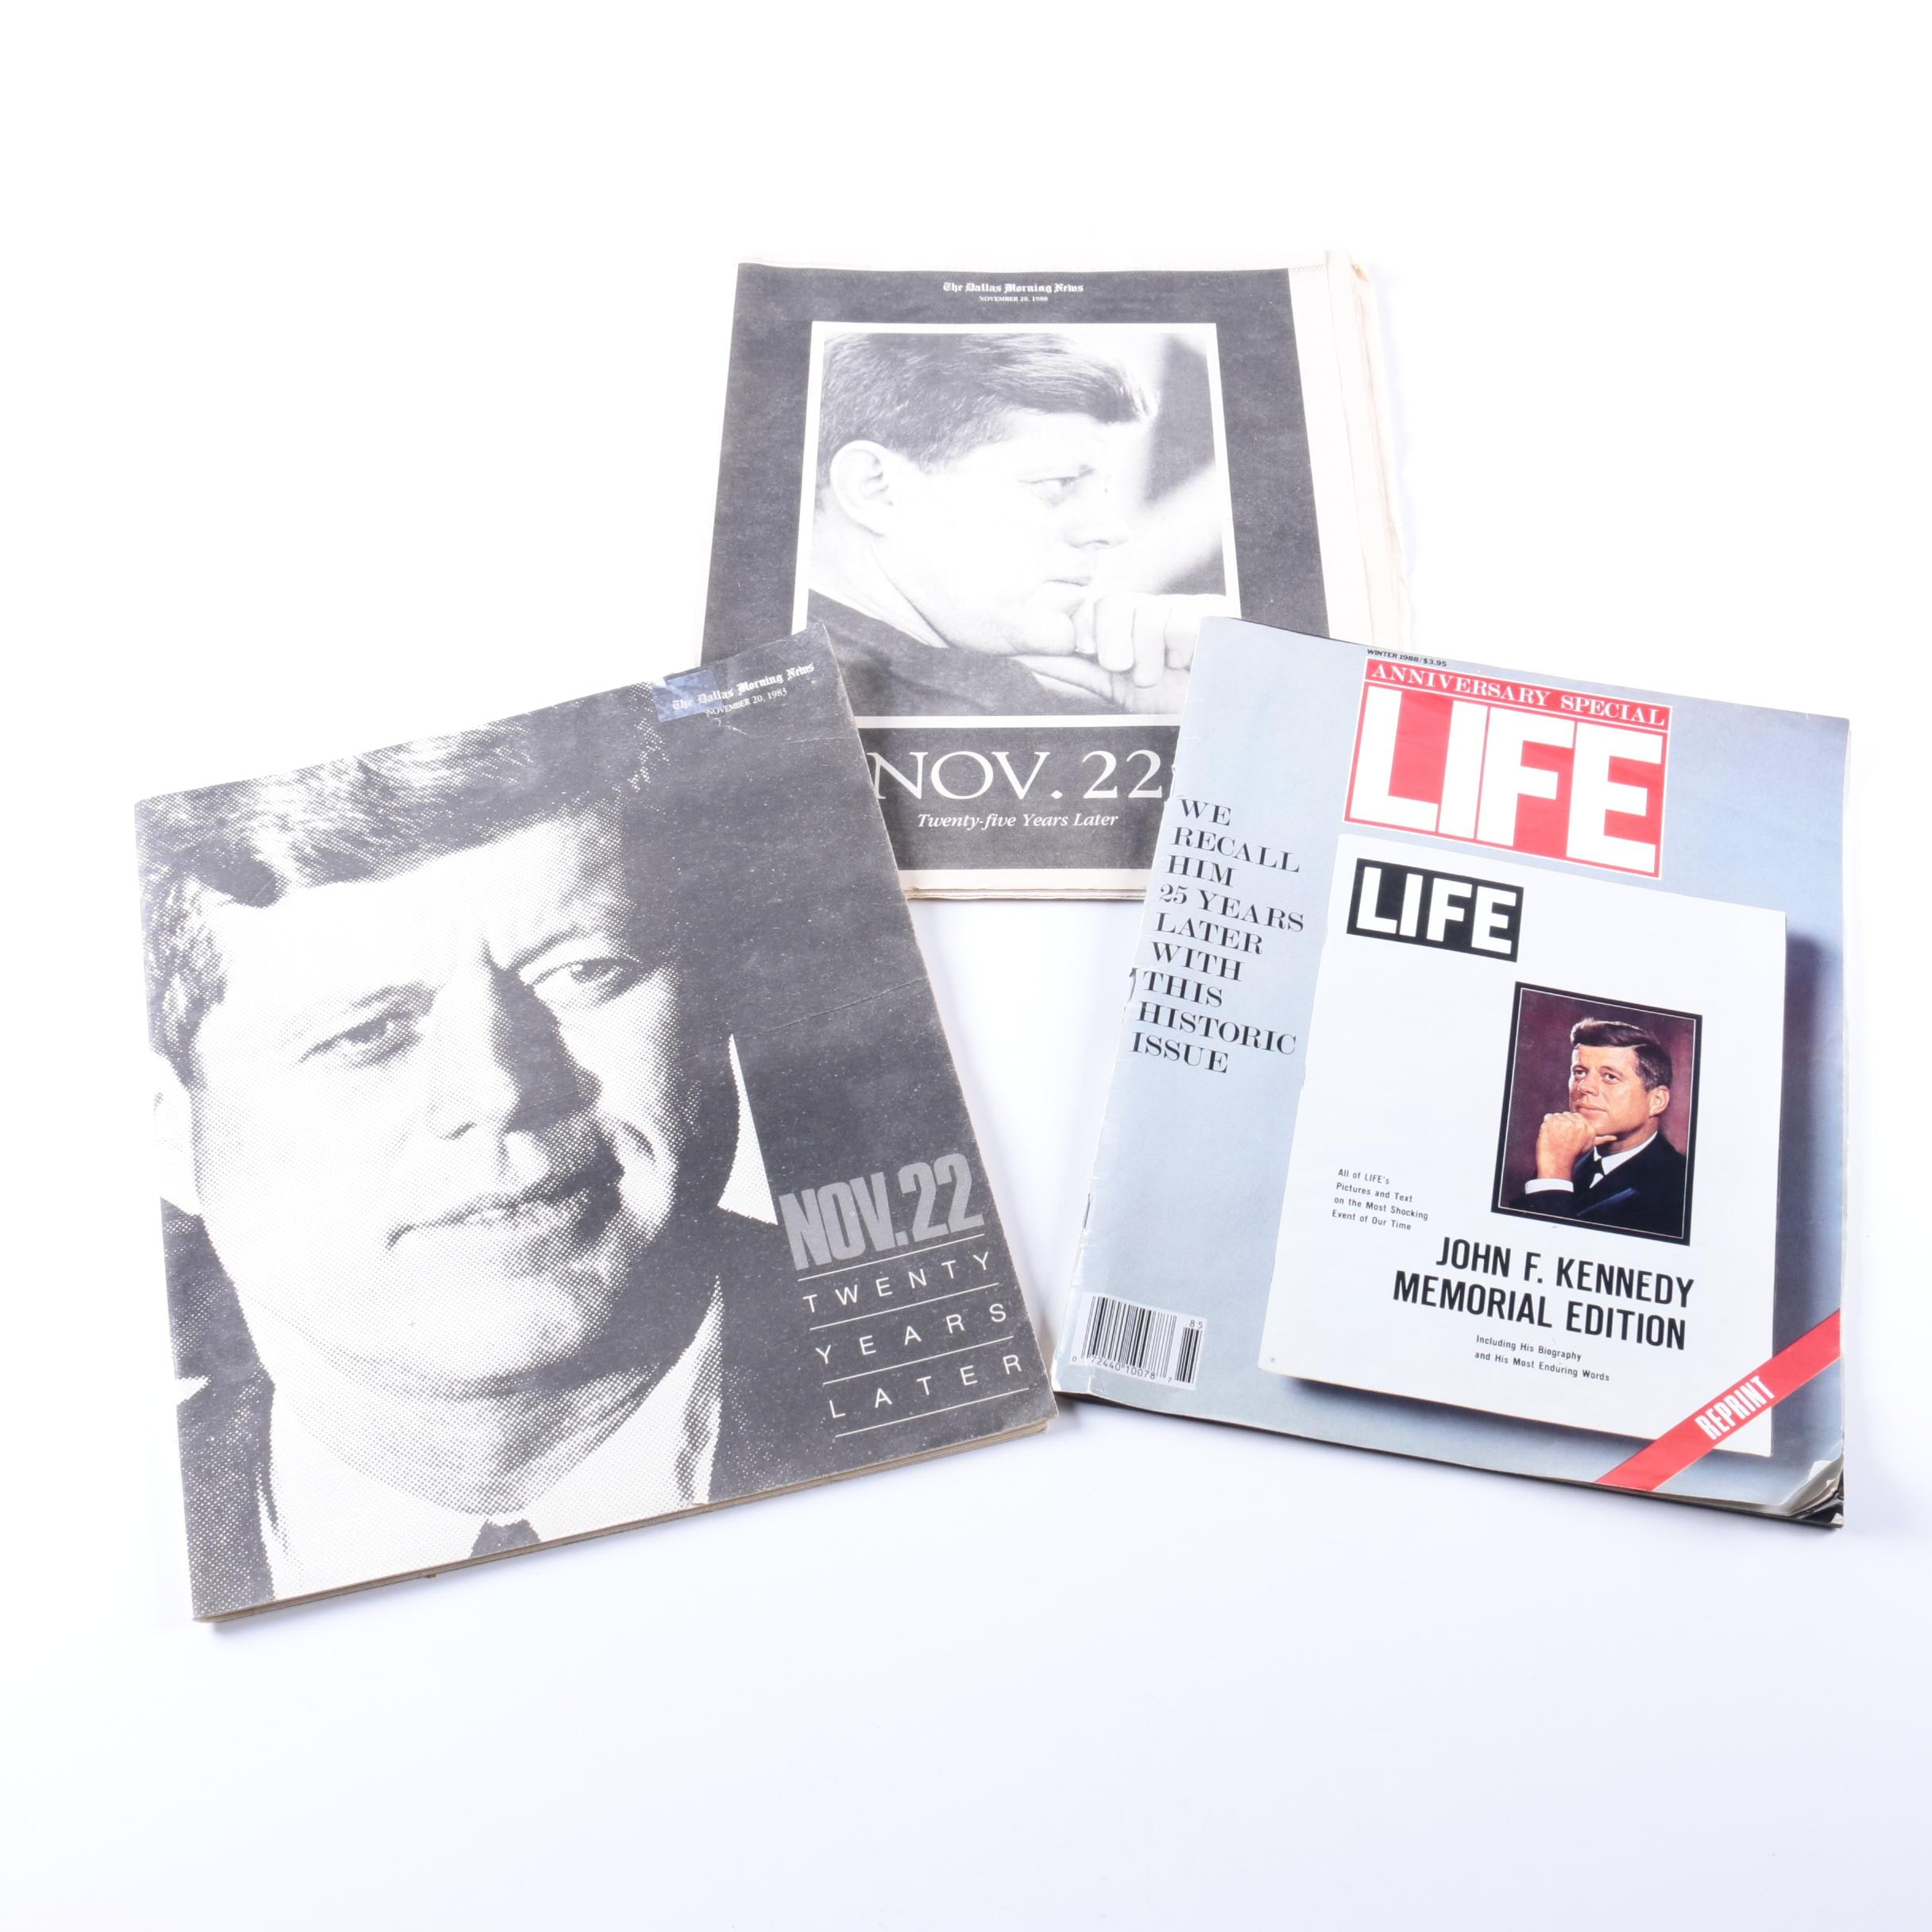 Assorted Newspapers and Magazine Featuring John F. Kennedy